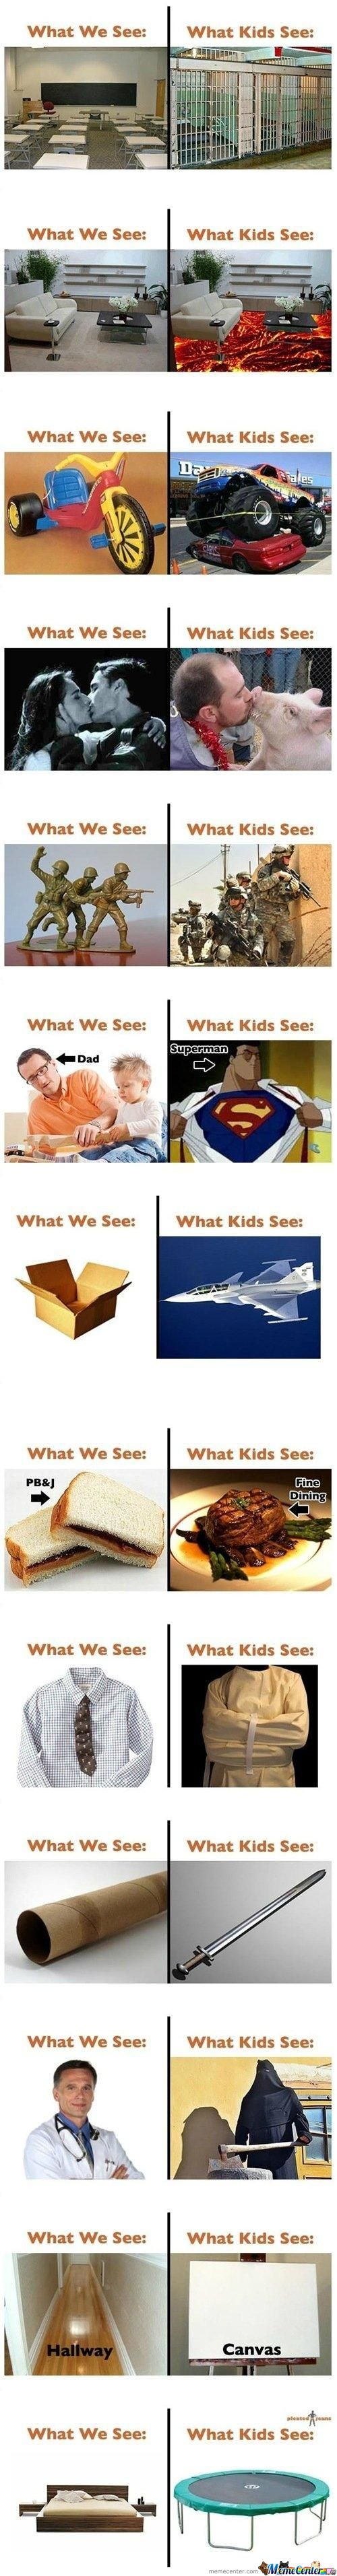 What We See And What Kids See